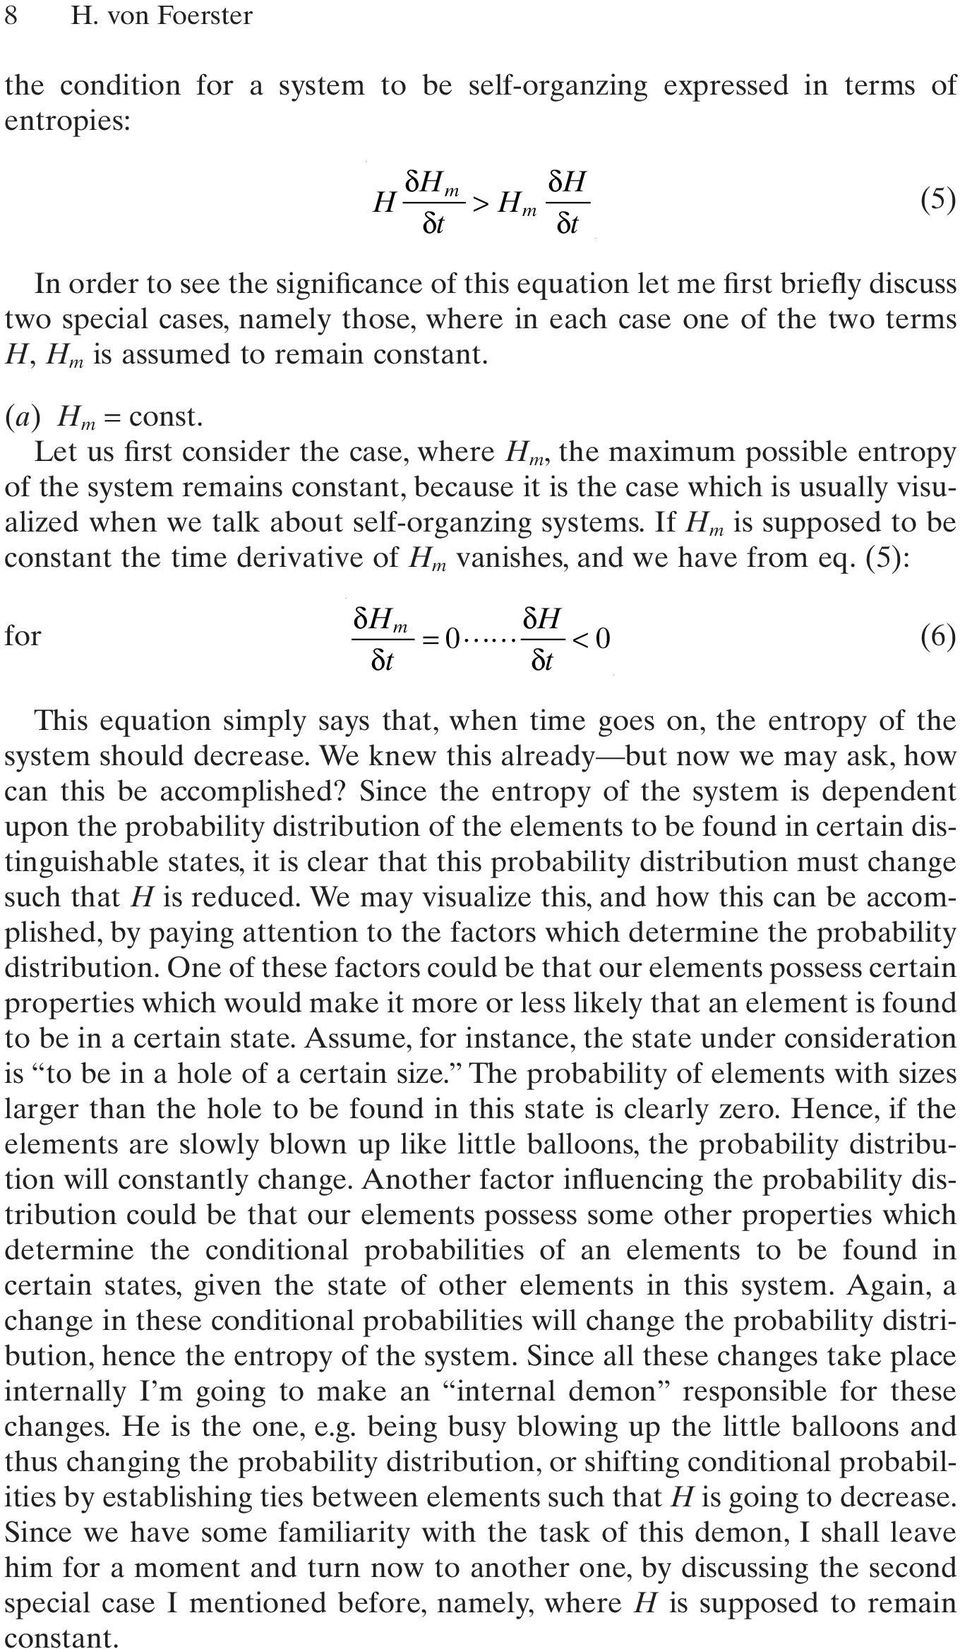 Let us first consider the case, where H m, the maximum possible entropy of the system remains constant, because it is the case which is usually visualized when we talk about self-organzing systems.